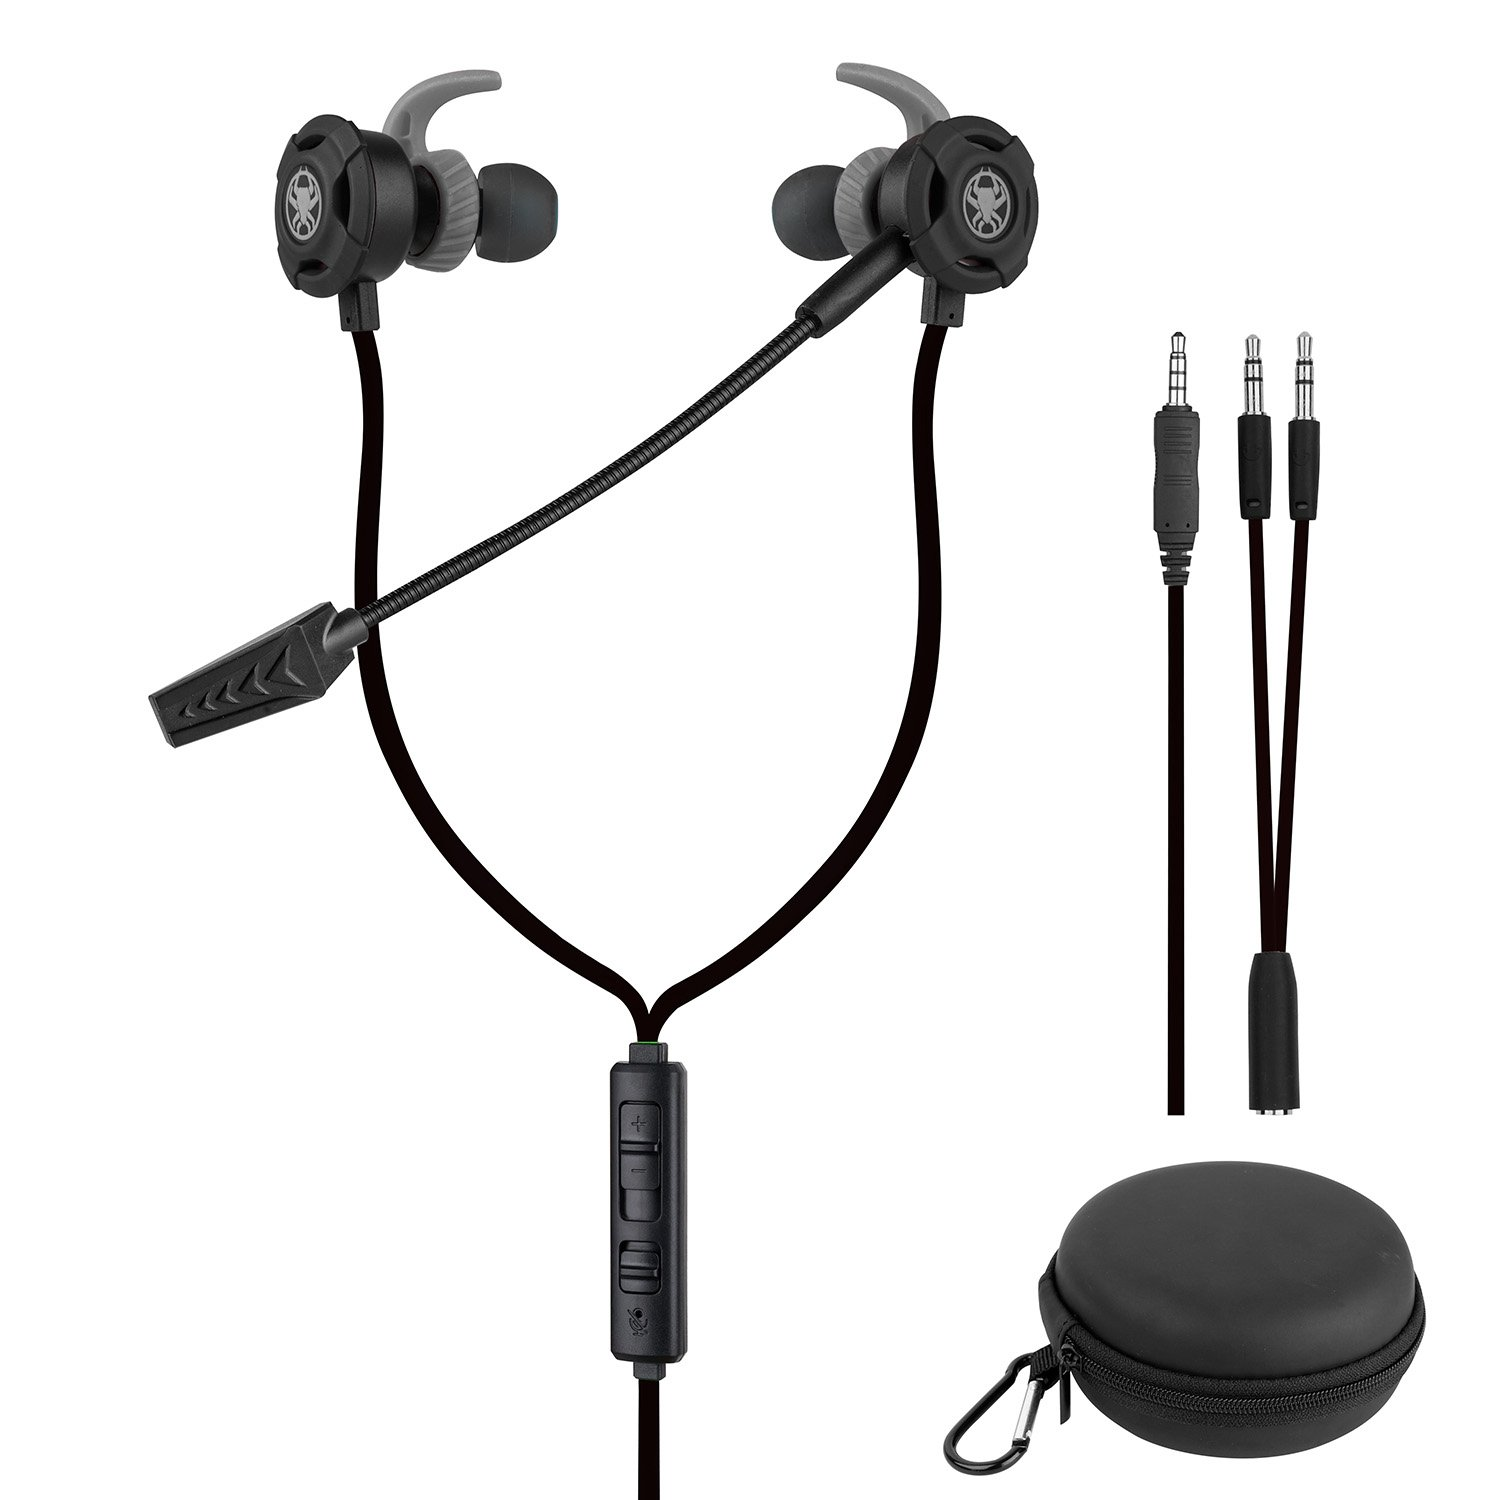 BlueFire 3.5 MM Gaming Headphone Wired Gaming Earphone Noise Cancelling Stereo Bass E-Sport Earphone with Adjustable Mic for PS4, Xbox One, Laptop, Cellphone, PC (Black)